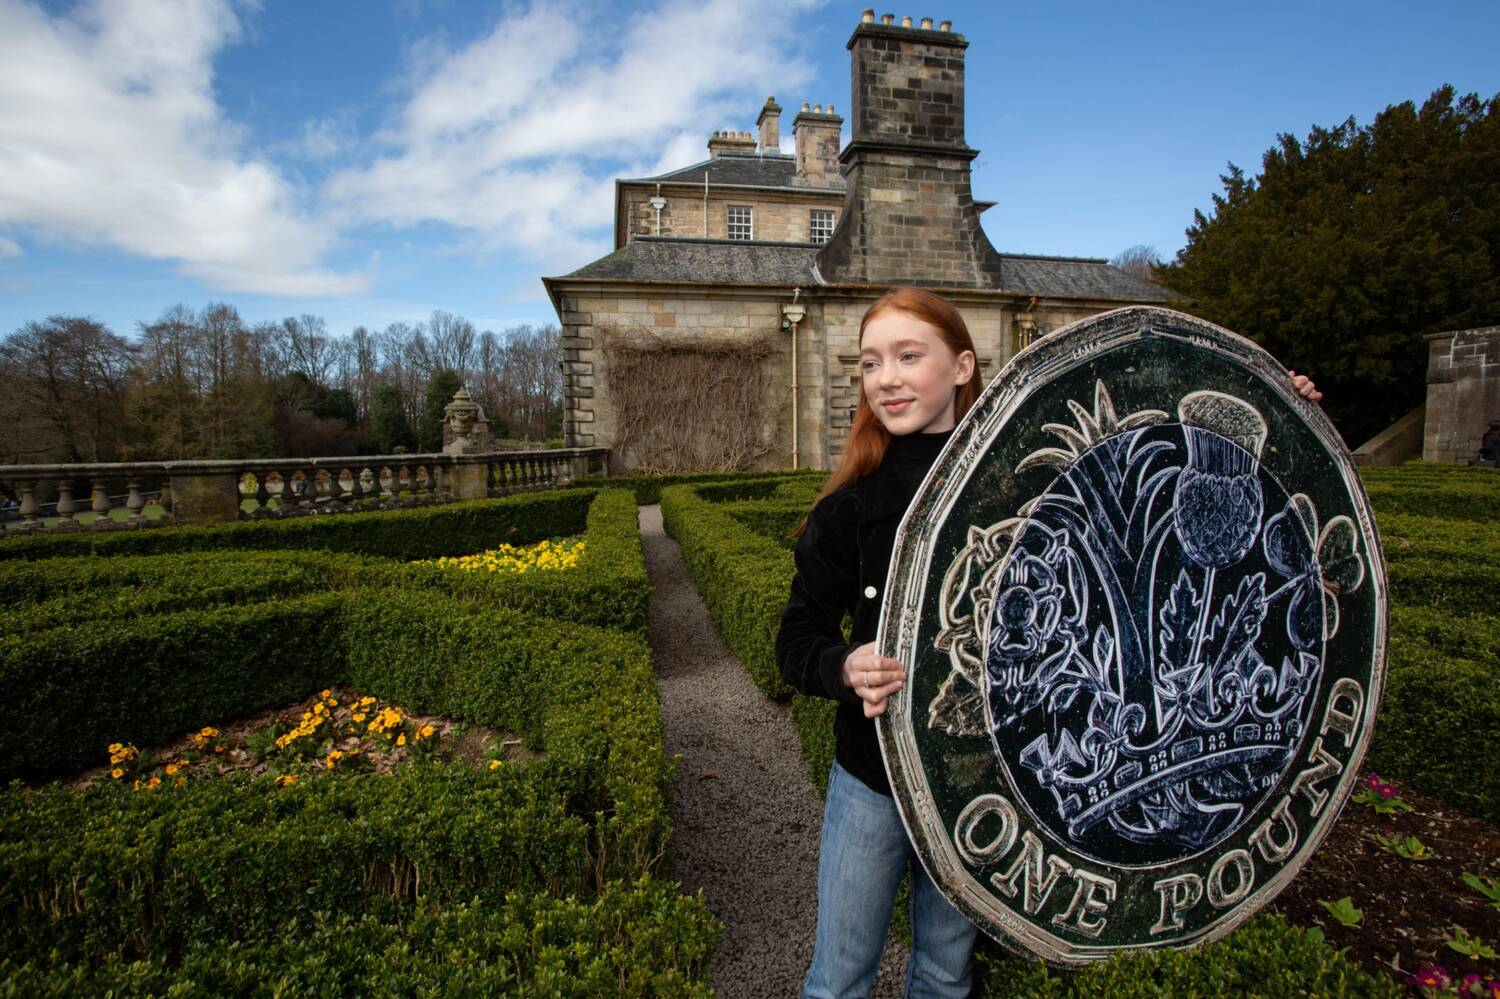 Cherry stands in the parterre garden at Pollok House holding a giant pound coin.